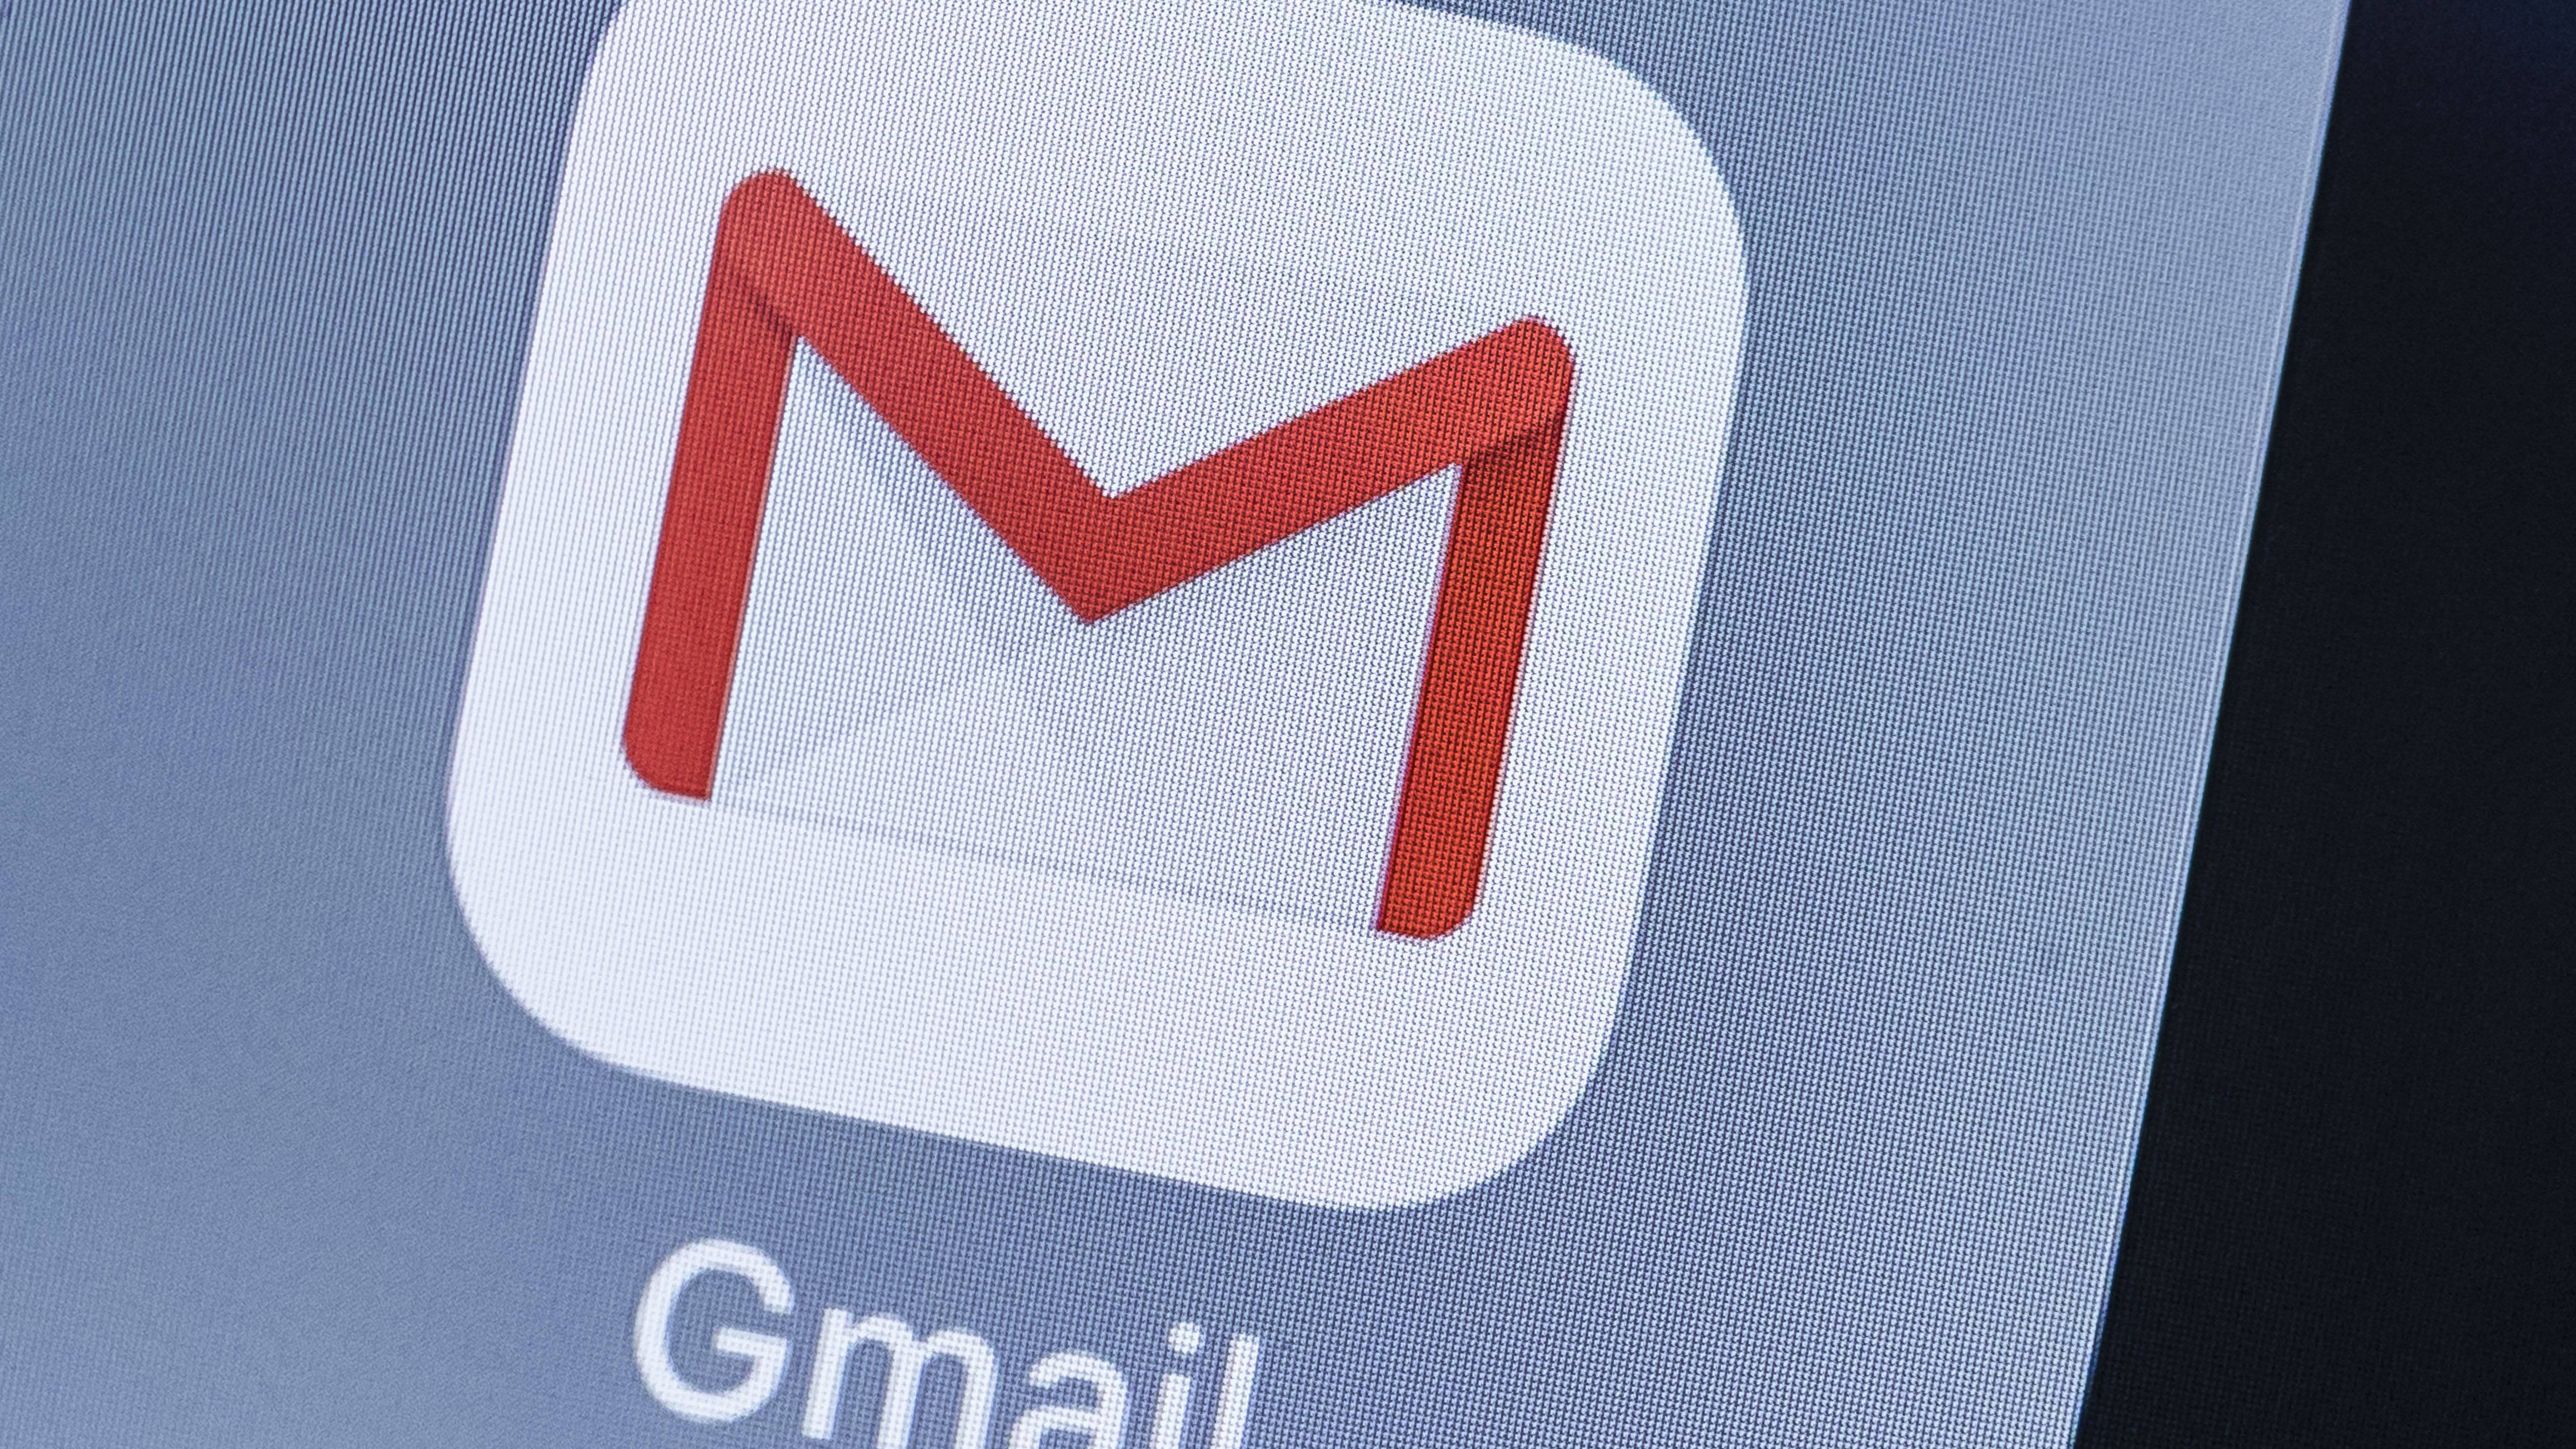 What to Do When Gmail Is Not Working on iPhone